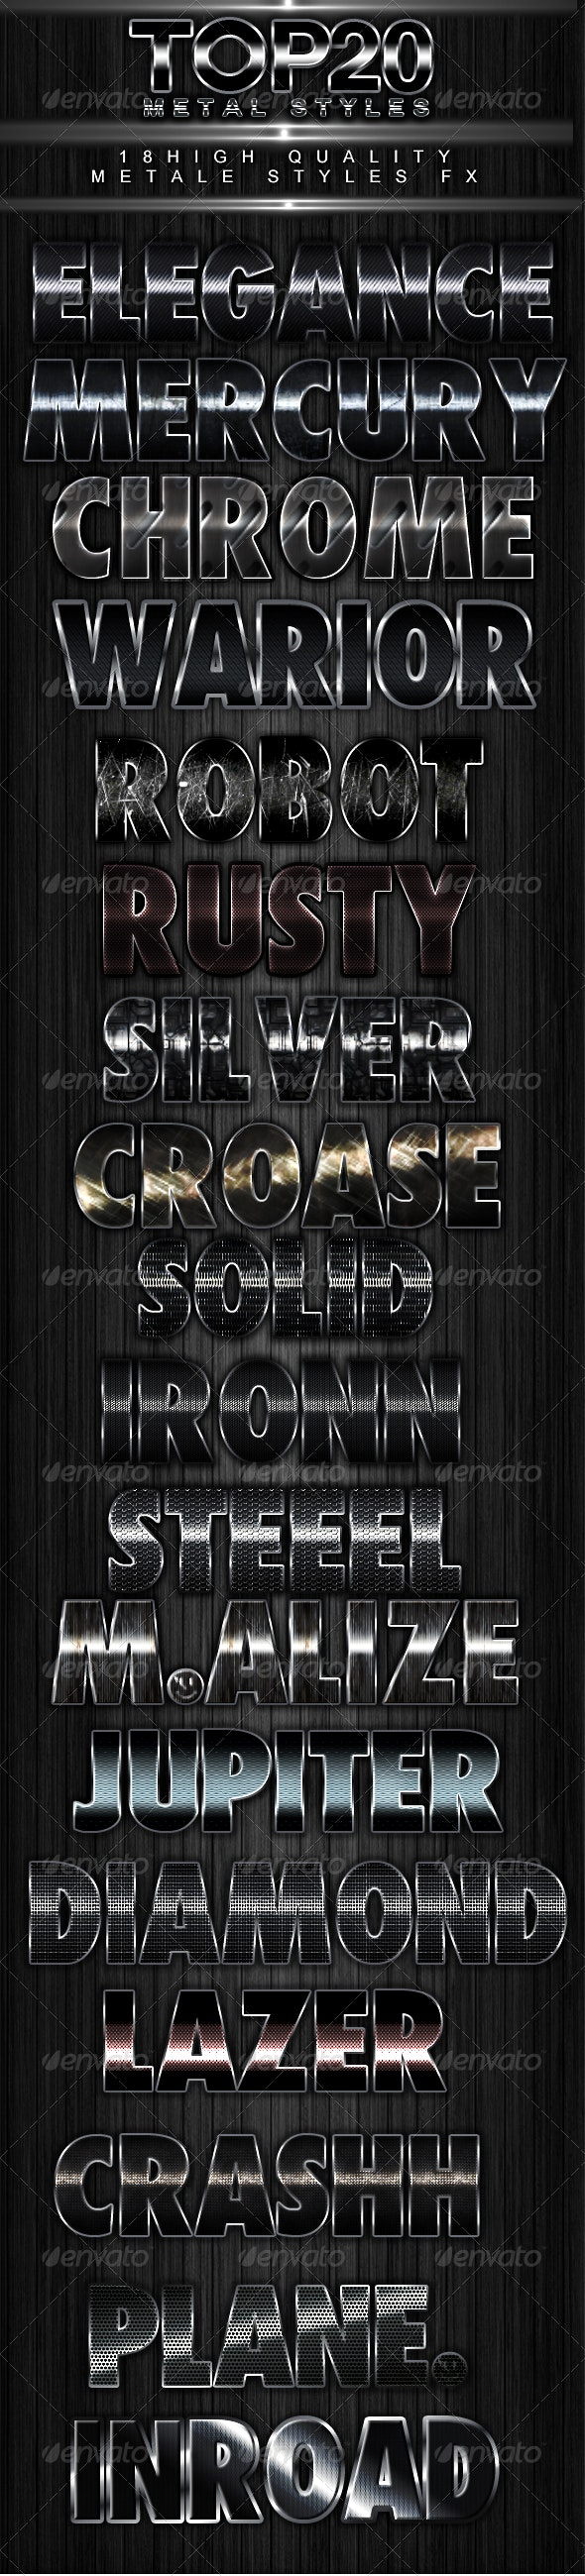 Top 18 metal styles - Photoshop Add-ons